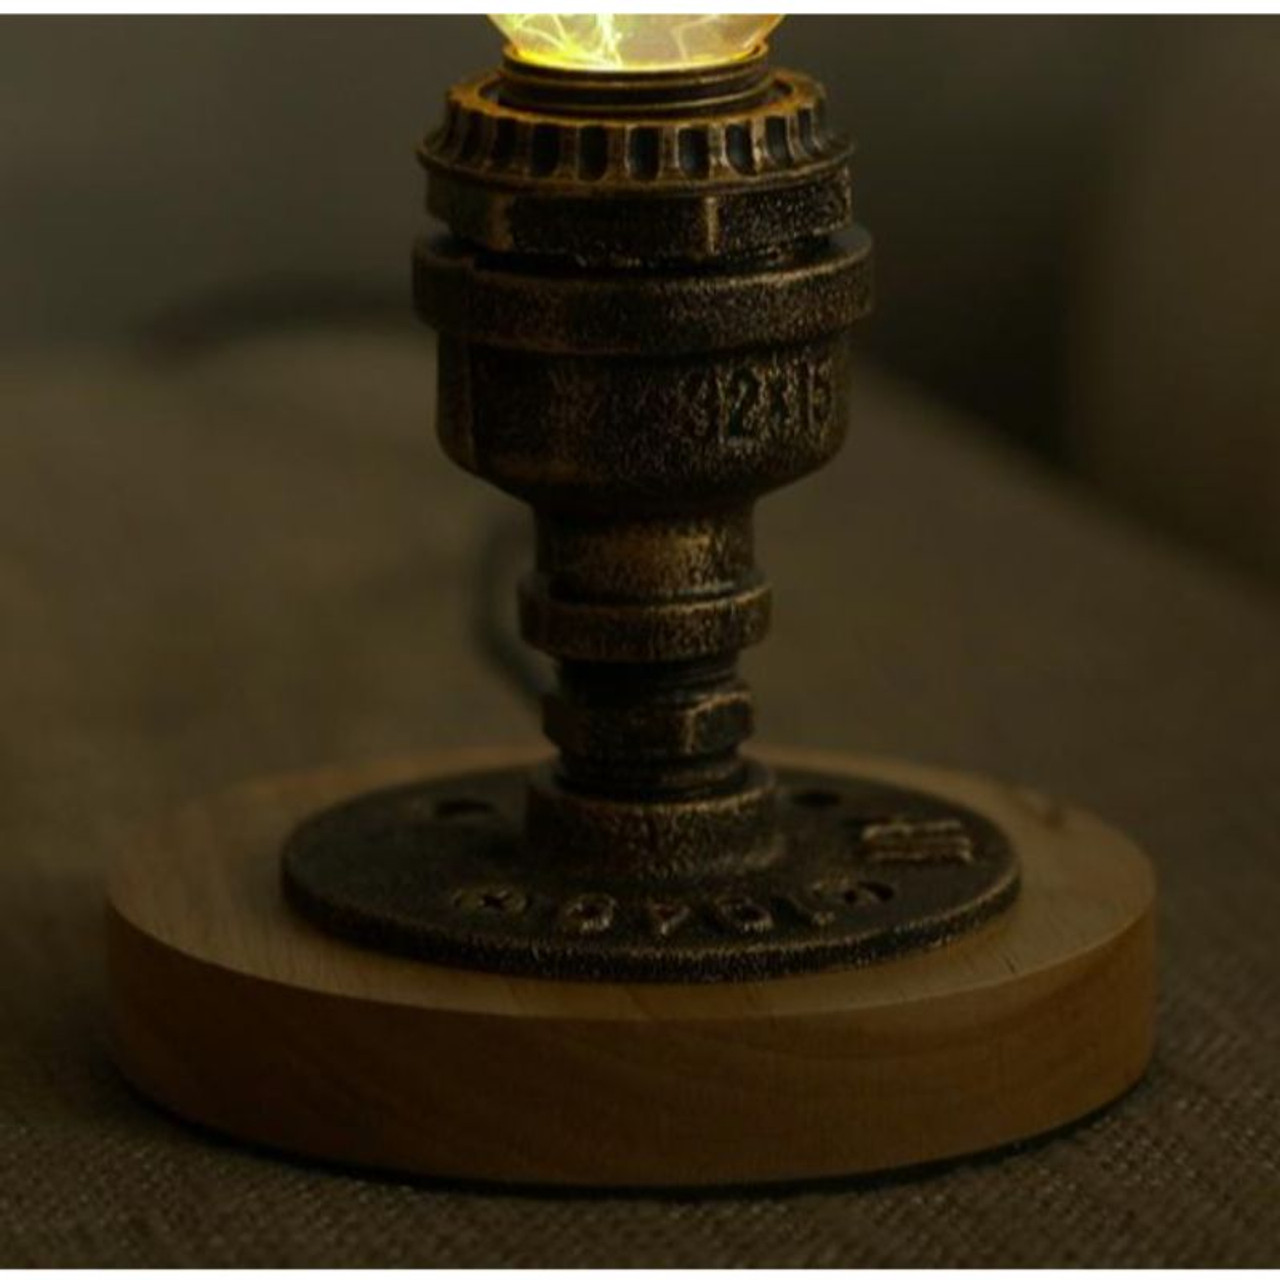 EP Light Memory Bulb Art Fixture Lamp with Optional Modern or Vintage Base Stand